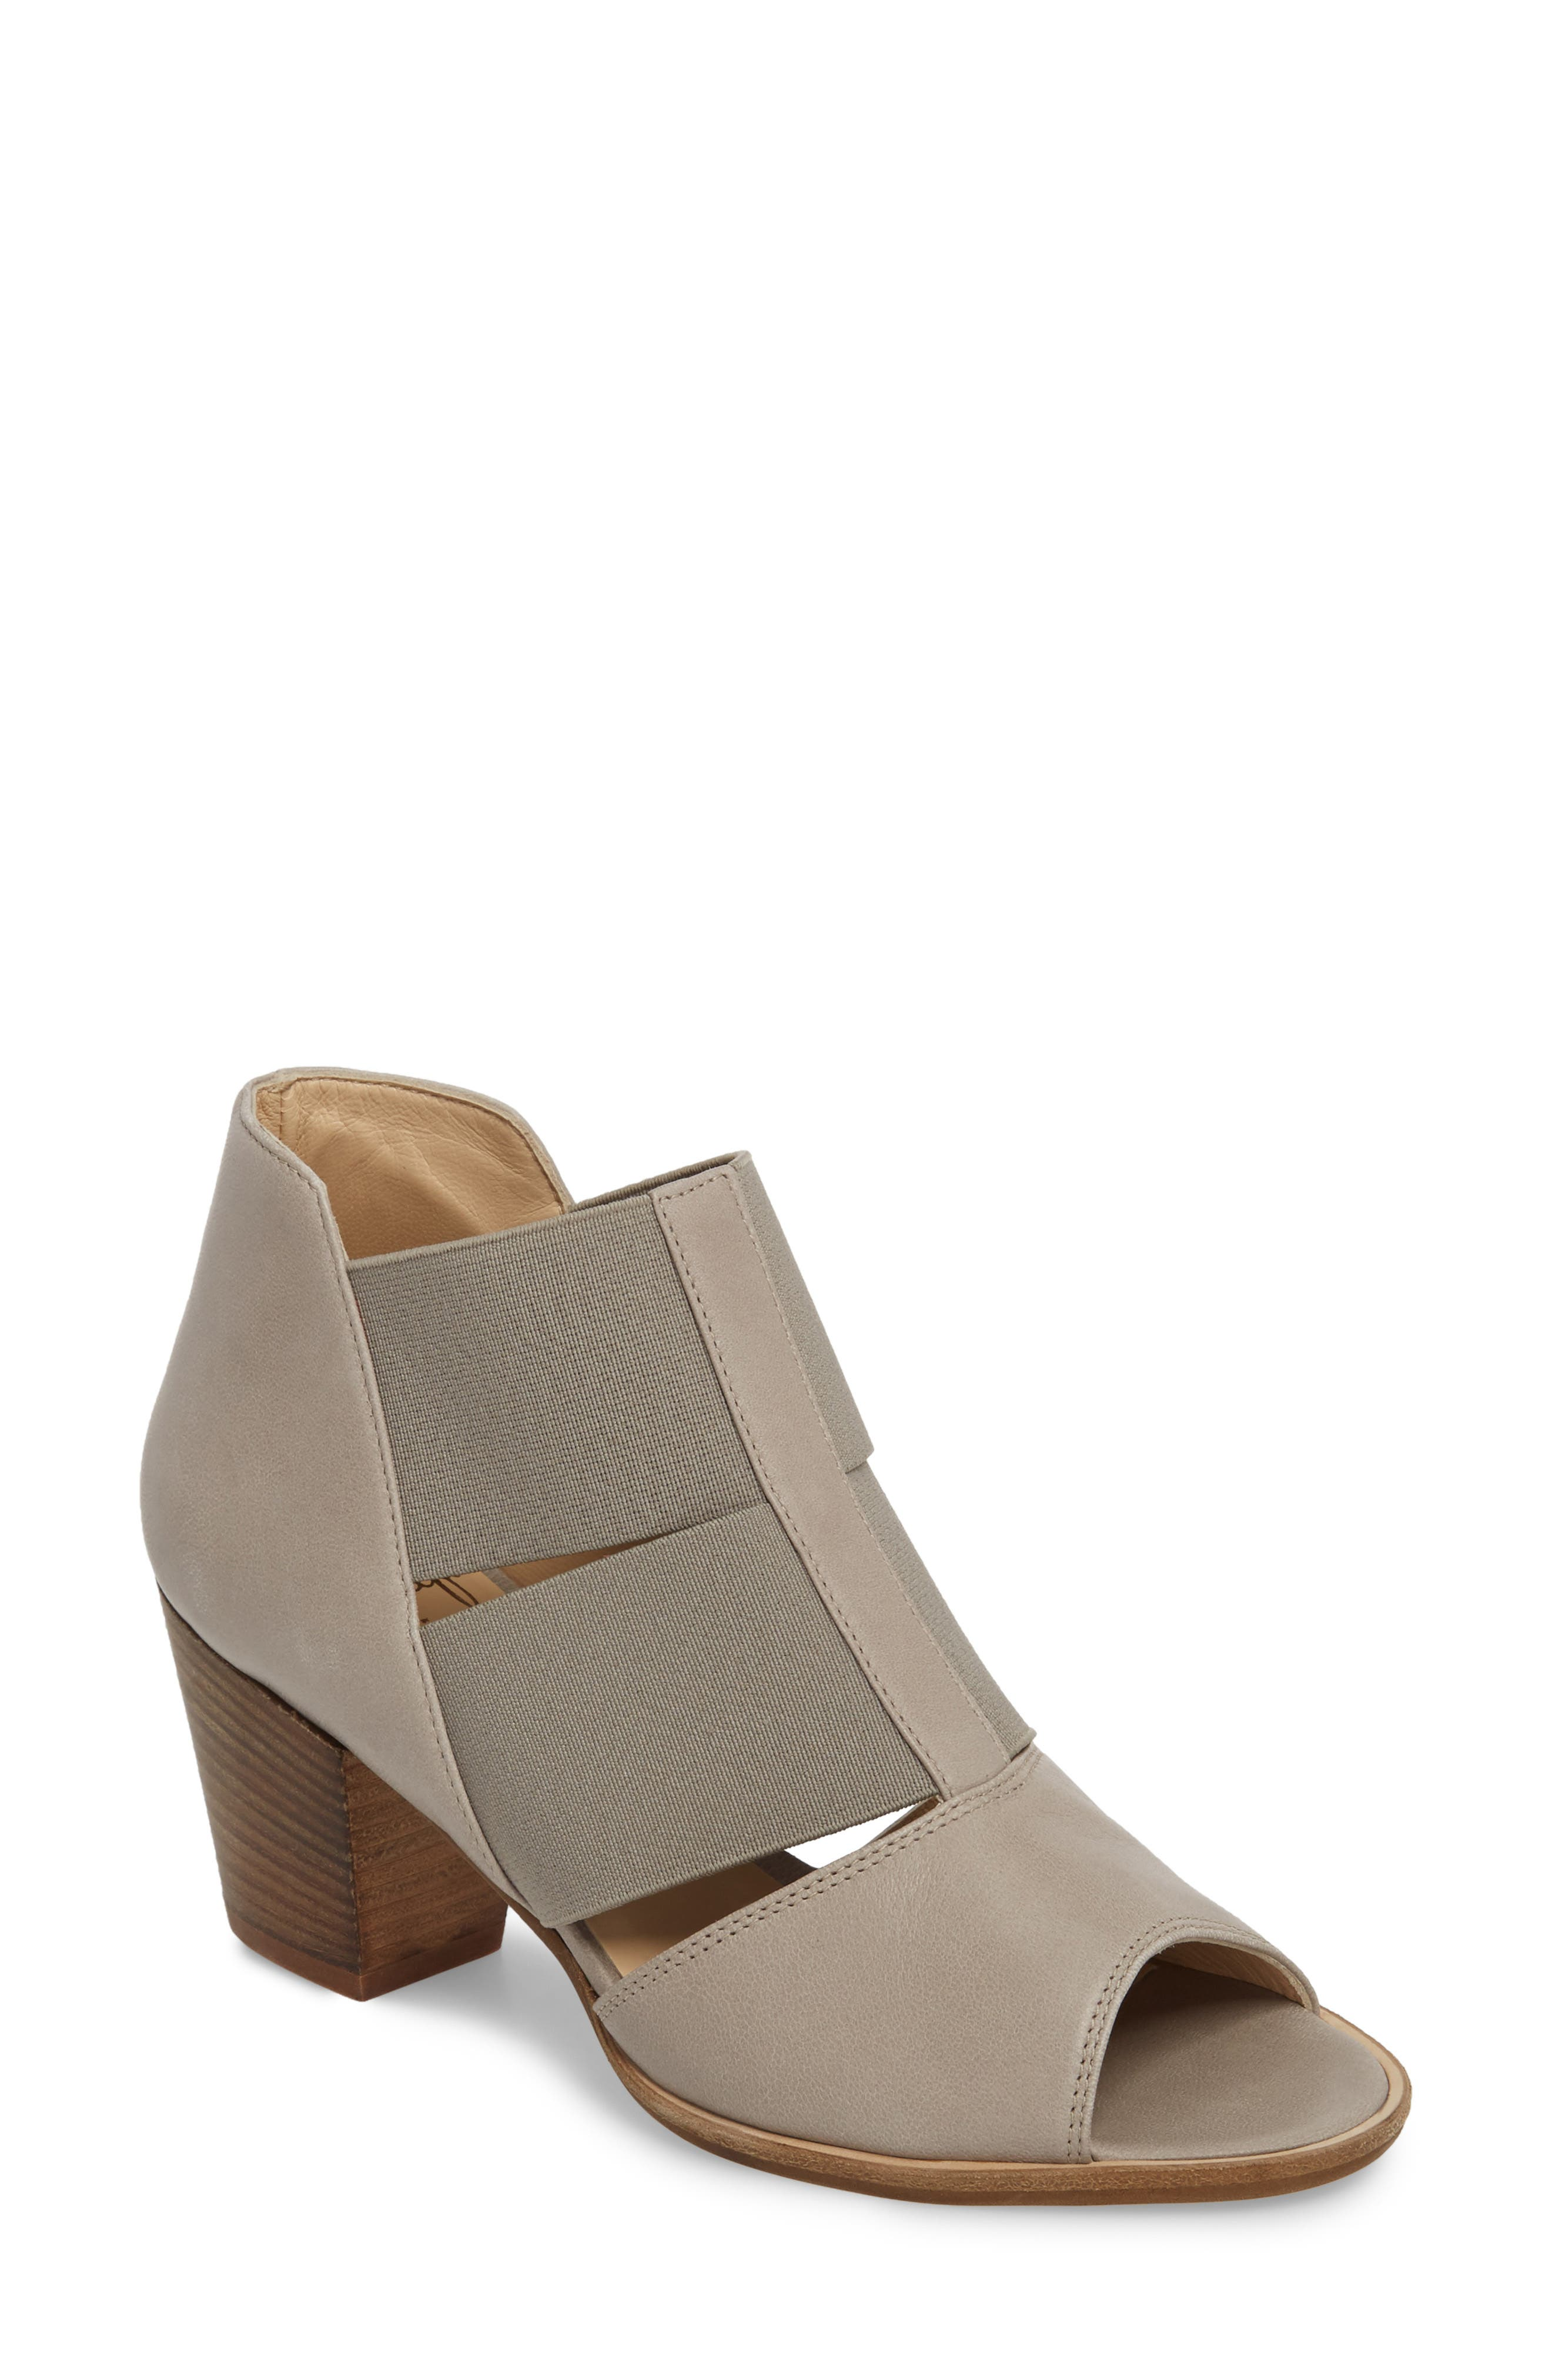 AMALFI BY RANGONI Cestello Bootie in Pearl Leather